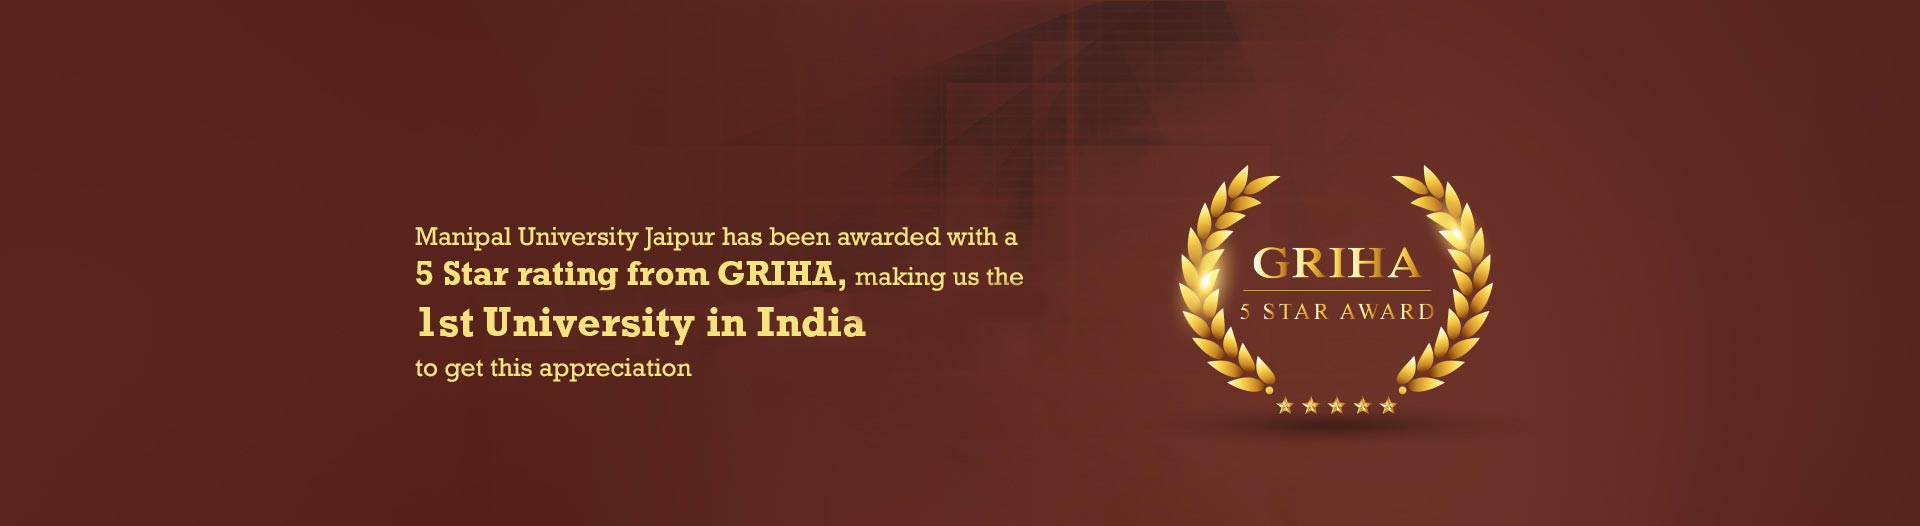 griha-leed ratings